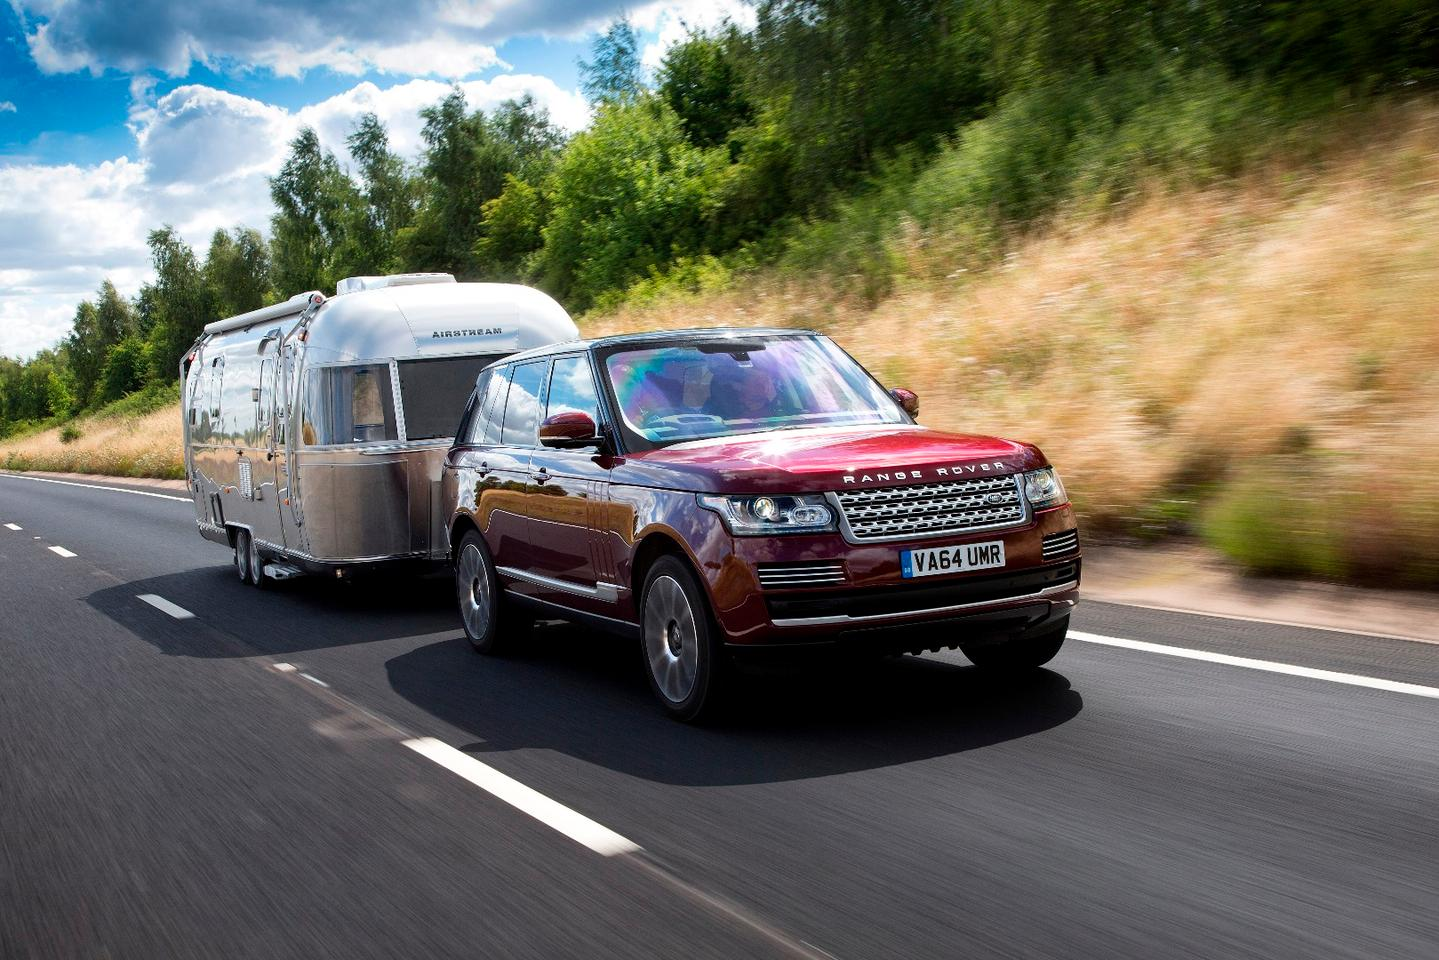 The Transparent Trailer uses video feeds from the car's surround camera system together with another digital wireless camera installed in the rear of a trailer, caravan, or horsebox